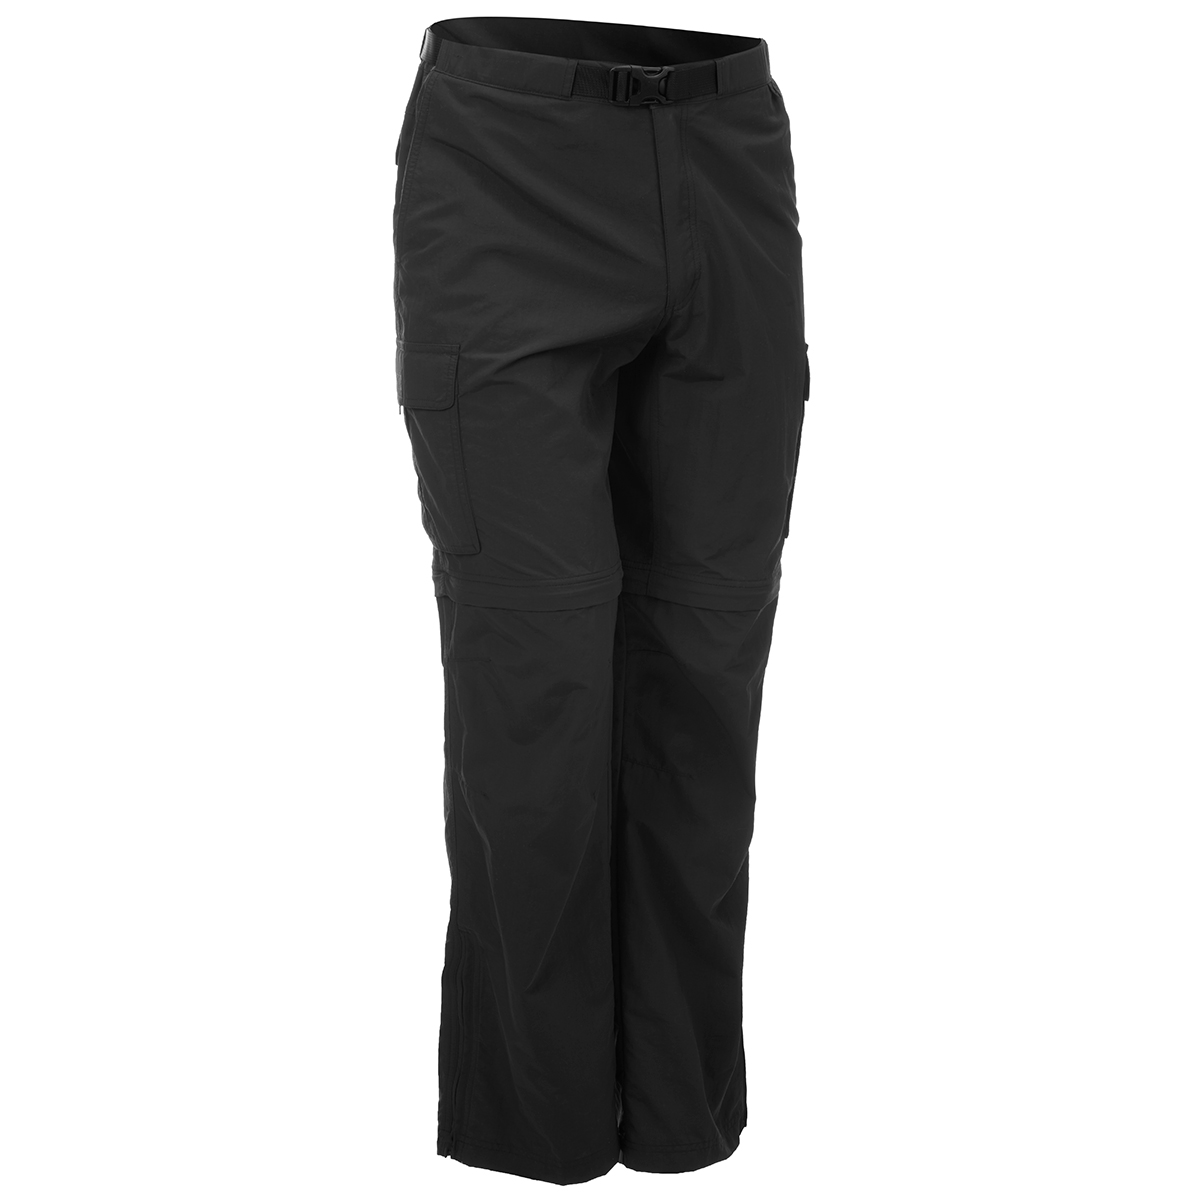 Ems Men's Camp Cargo Zip-Off Pants - Black, 33/30